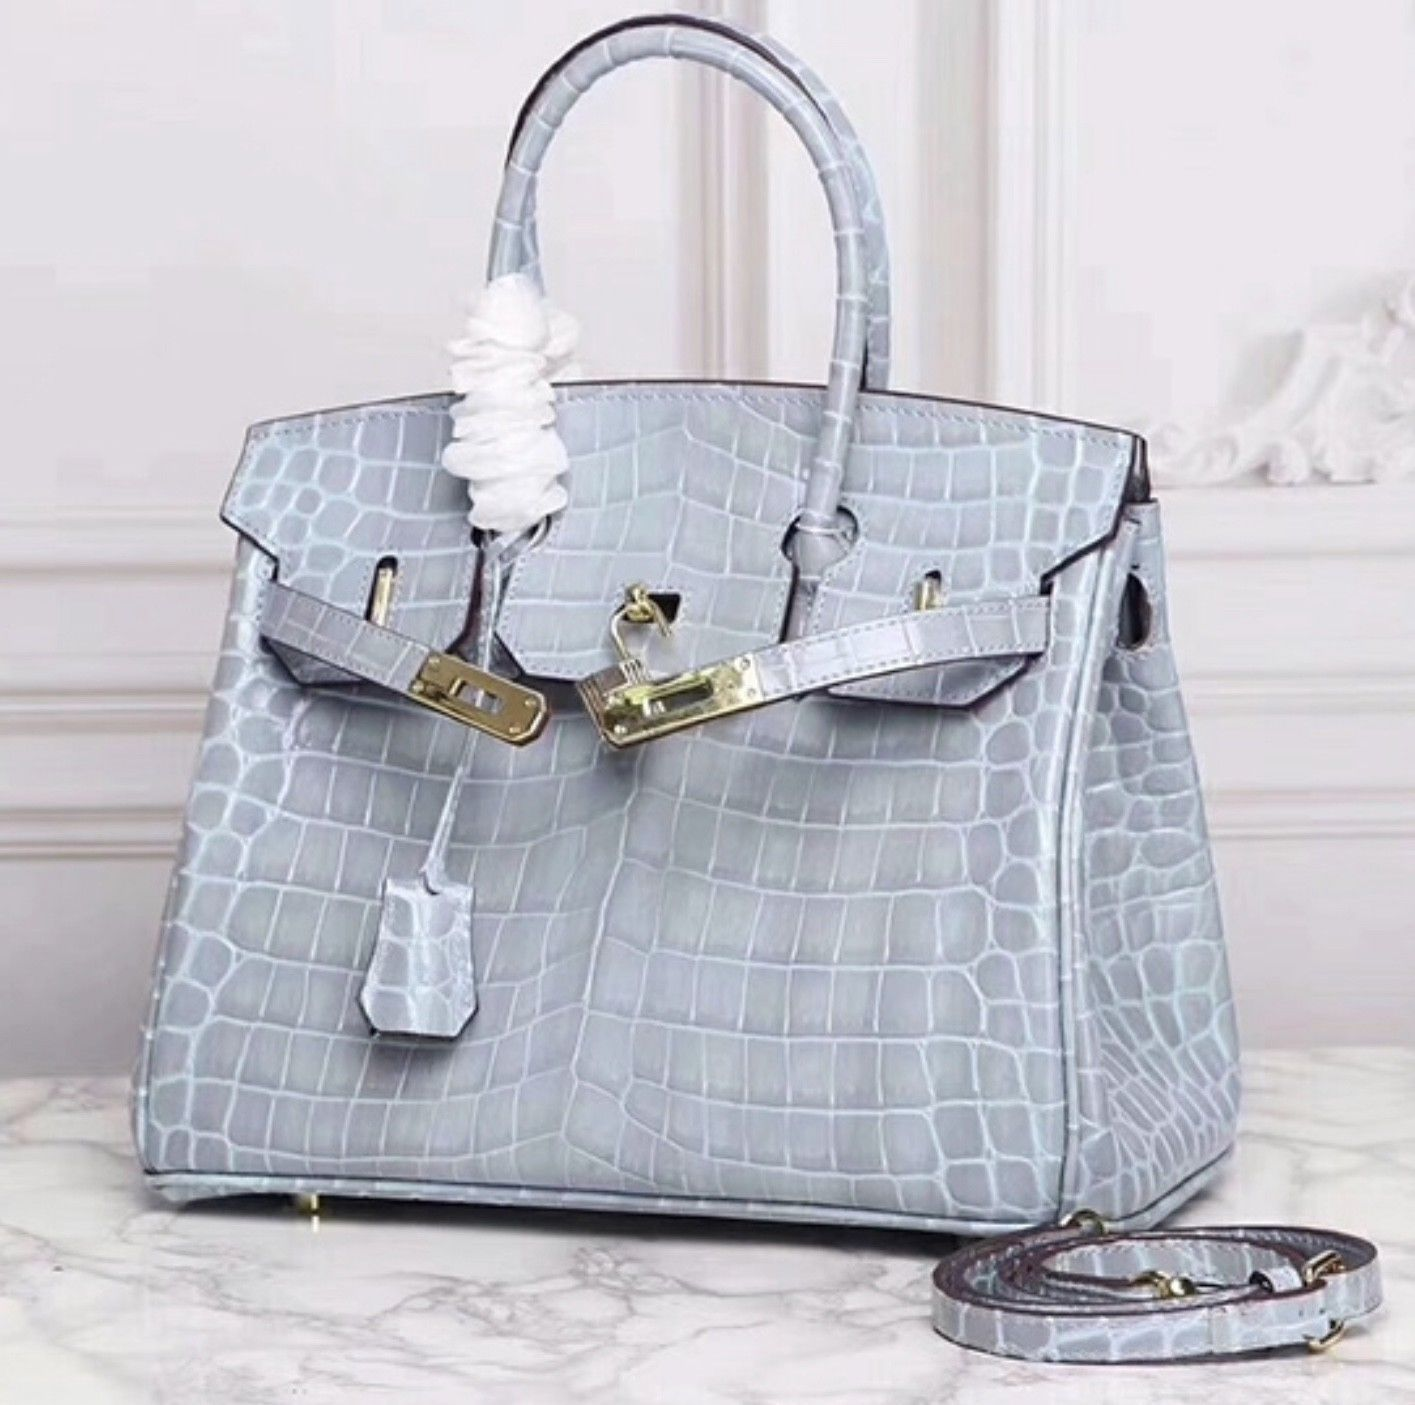 25cm Crocodile Embossed Italian Leather Lock and Key Celebrity Satchel Handbag